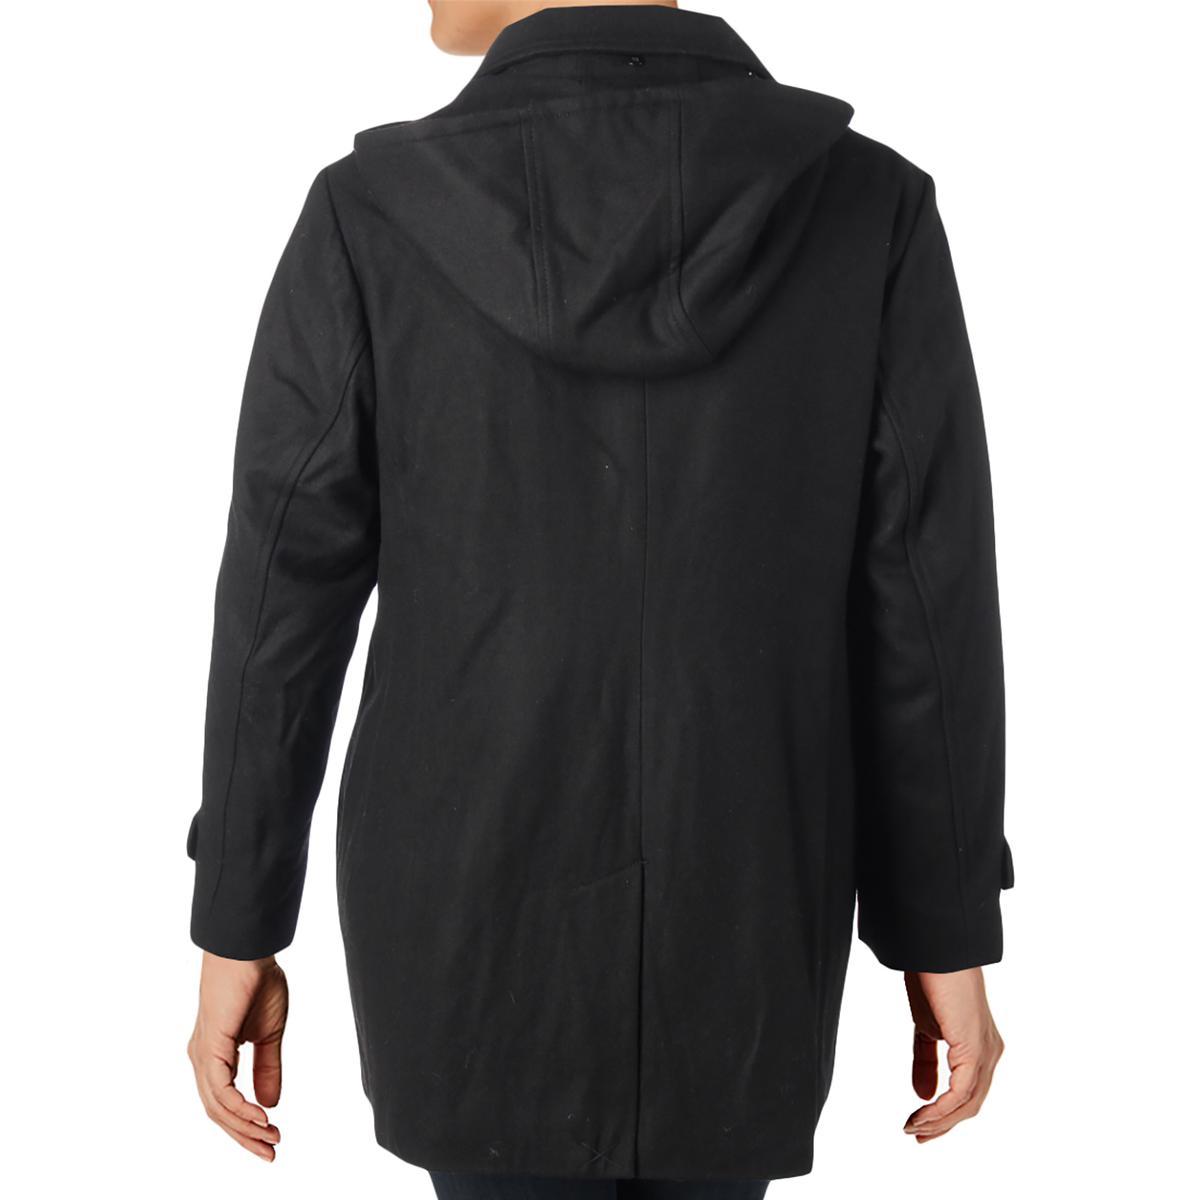 31401aaa71d7 Details about MICHAEL Michael Kors Womens Black Fall Toggle Coat Outerwear  Plus 1X BHFO 5293